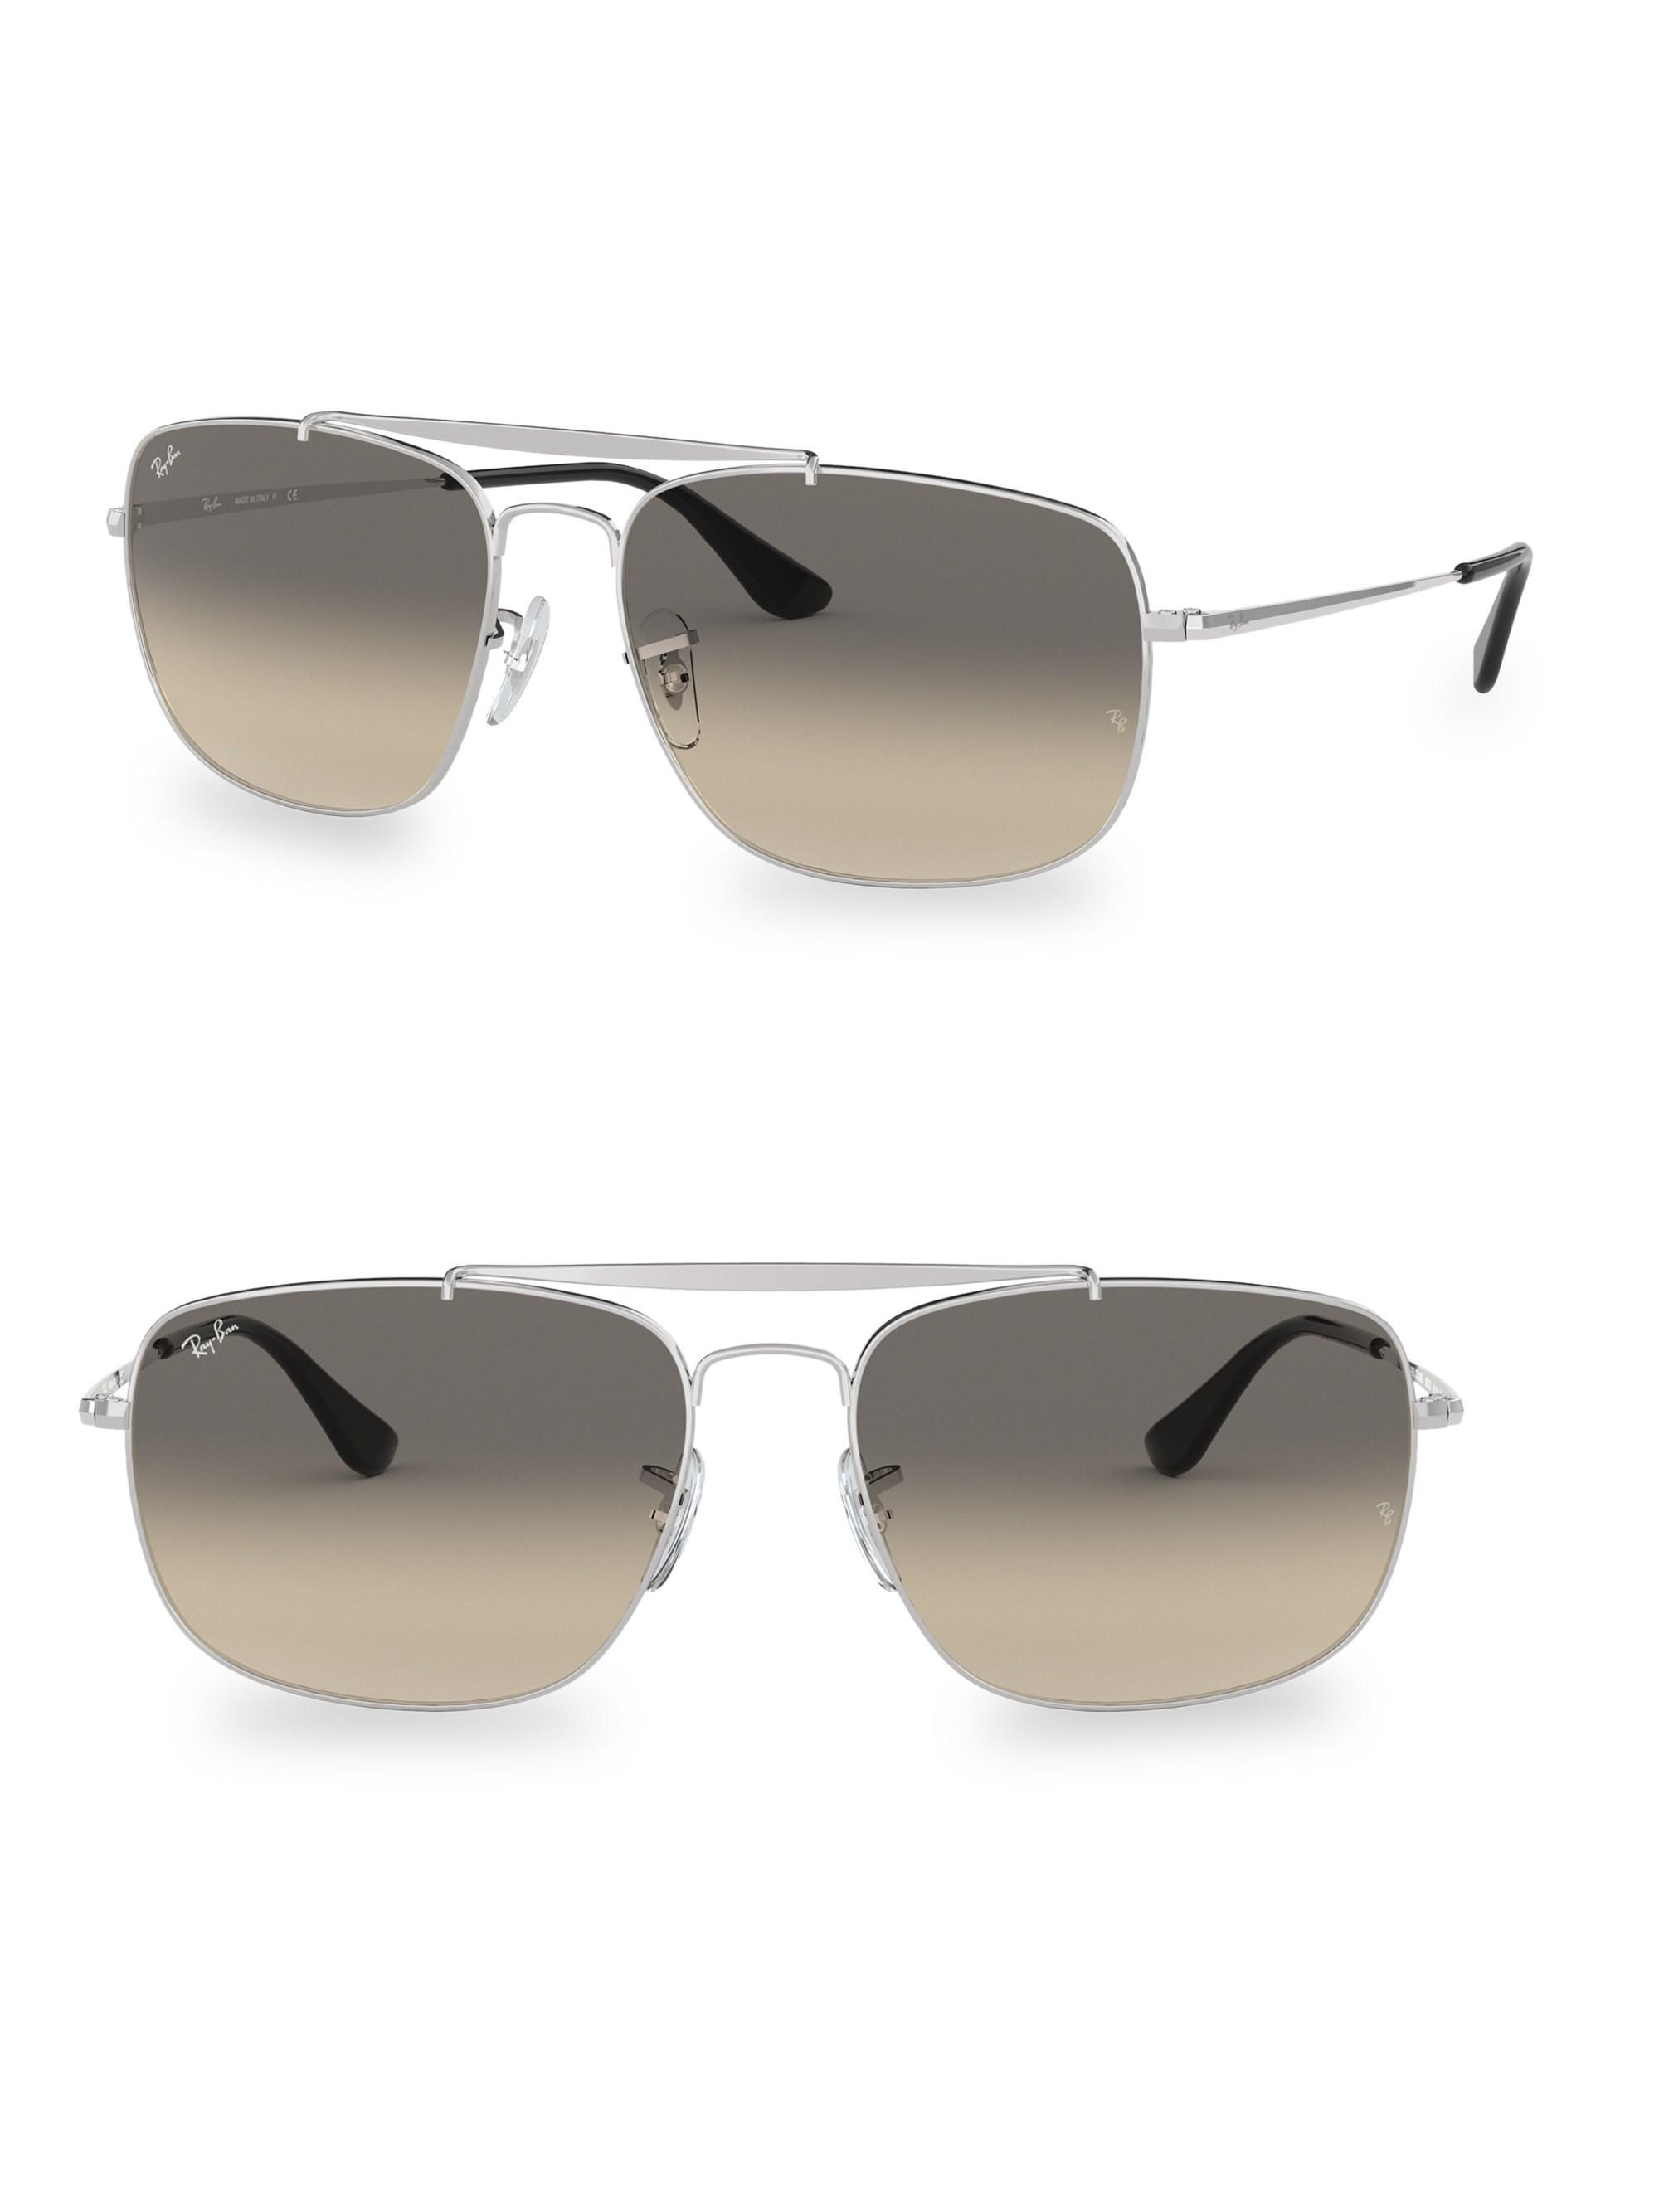 e40aca1f42a Lyst - Ray-Ban Men s Colonel Aviator Sunglasses - Silver in Metallic ...